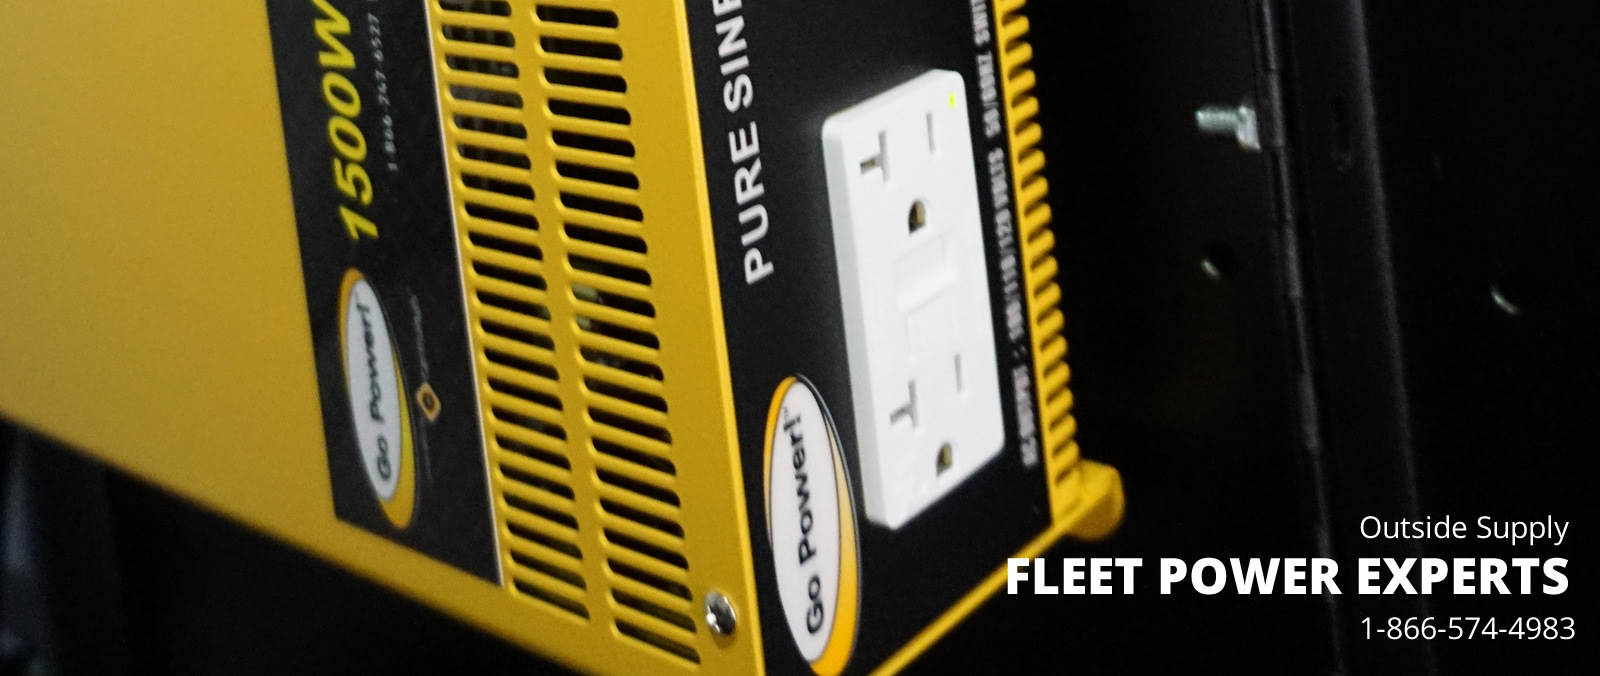 Fleet Power guide from Outside Supply covers many of the inverter and solar charging applications from work trucks, vans and delivery vehicles..